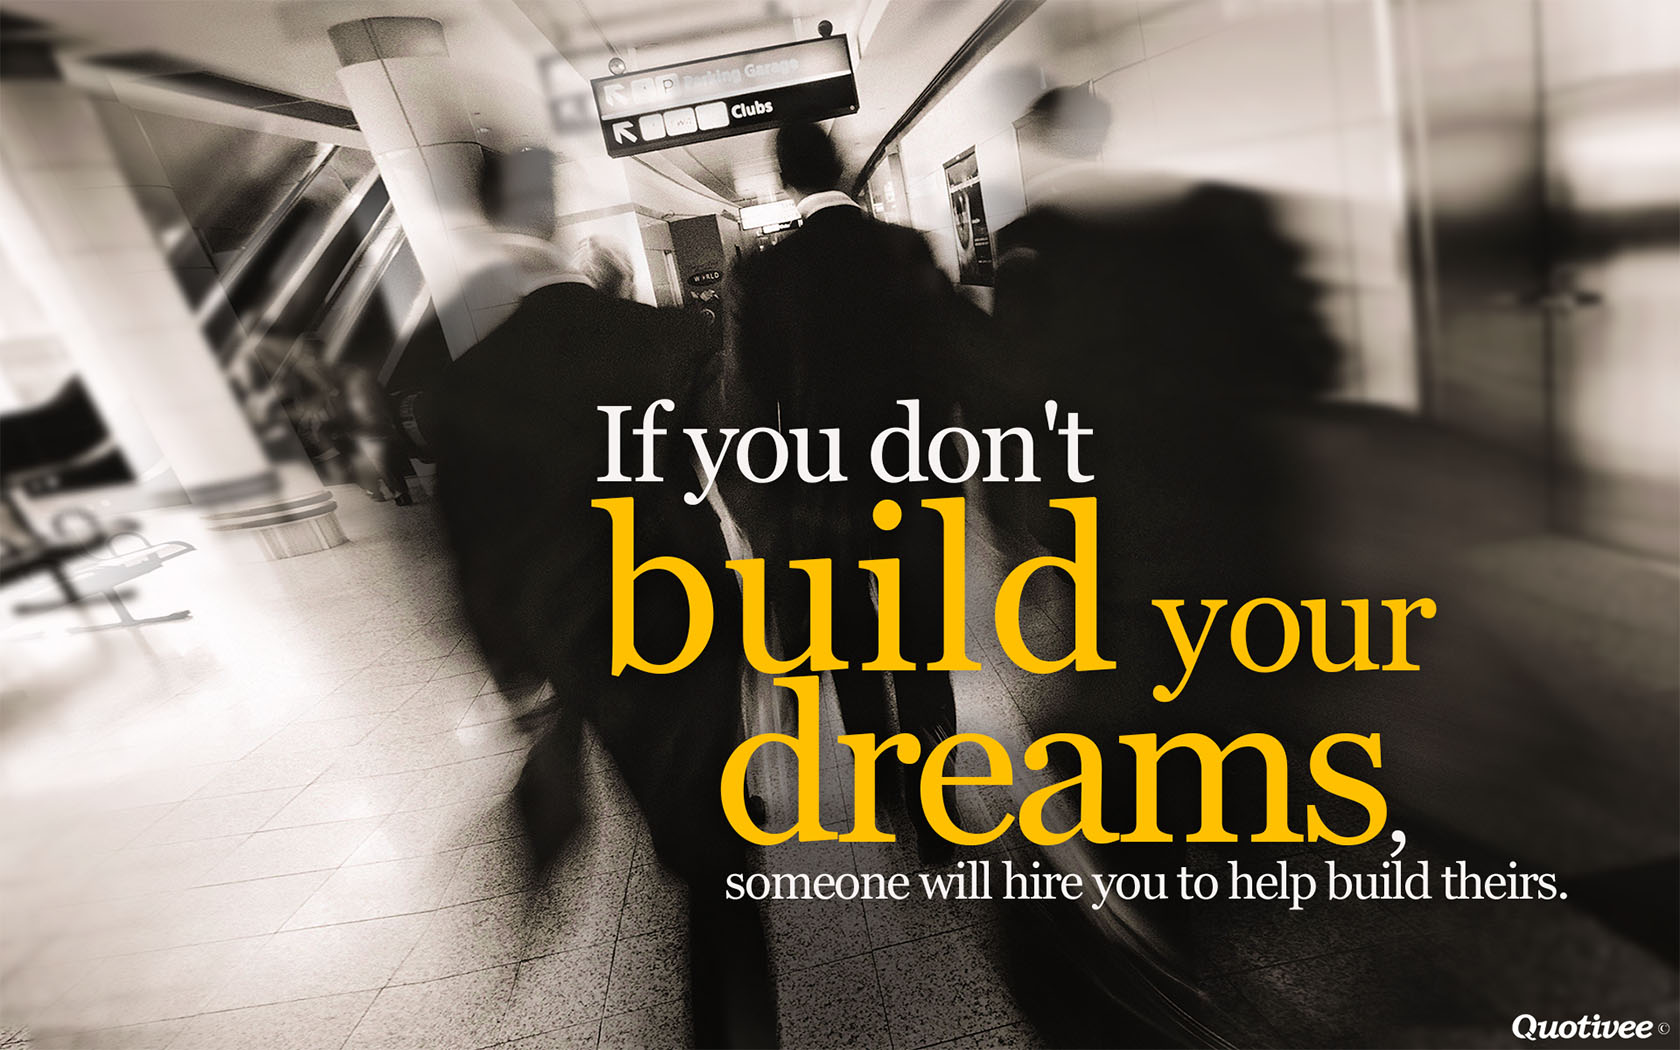 Business Inspirational Quotes Wallpaper Download Build Your Own Dreams Inspirational Quotes Quotivee